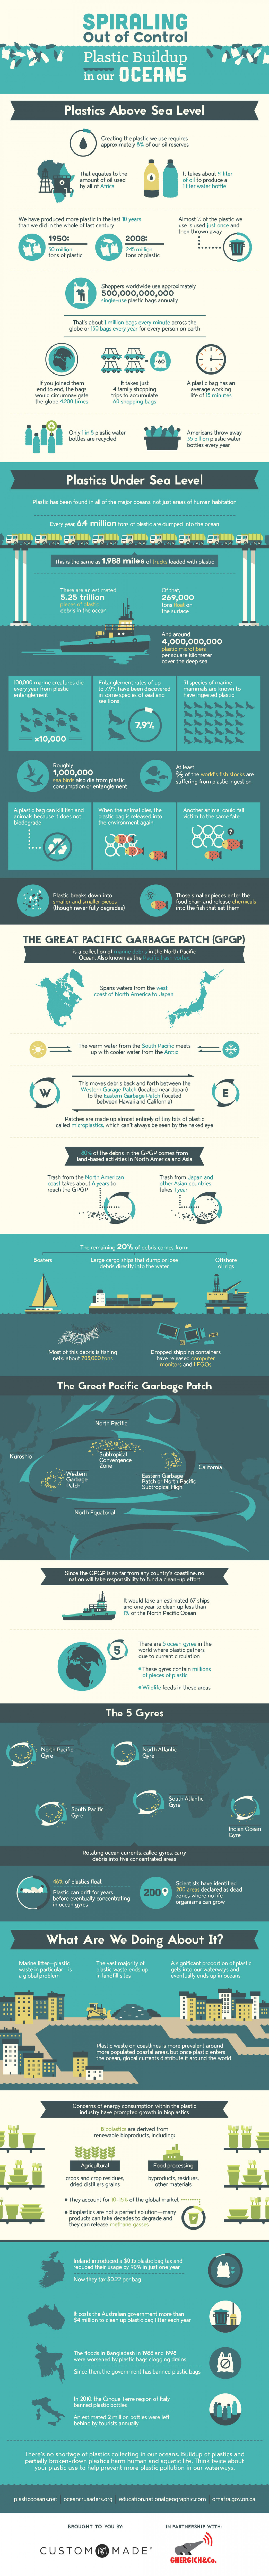 Spiraling Out of Control Infographic